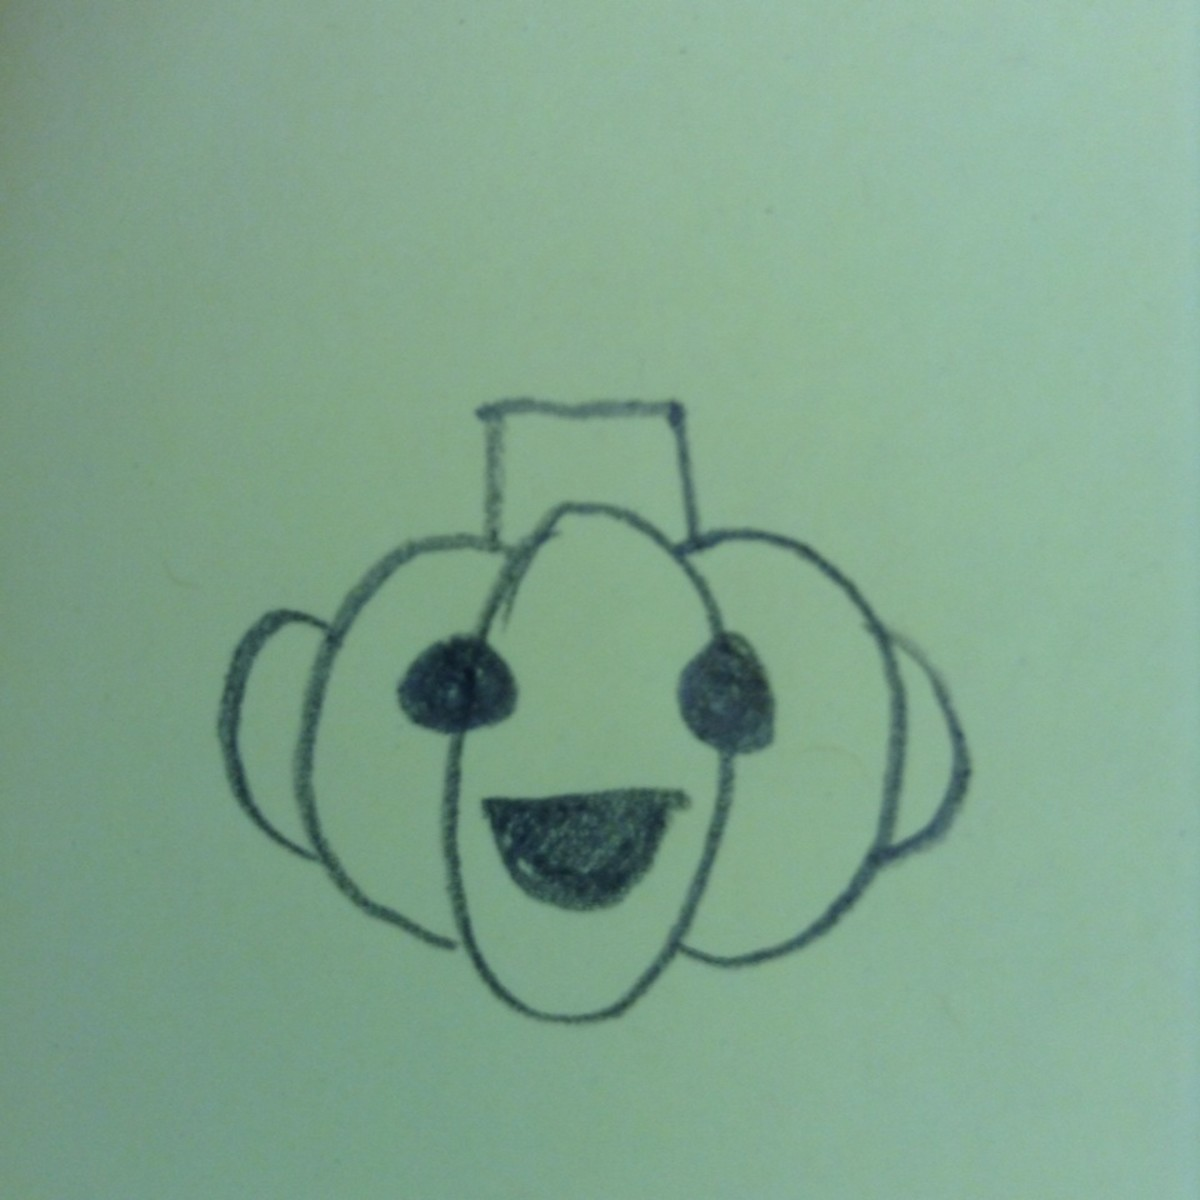 Use shapes to draw a Jack O' Lantern face.